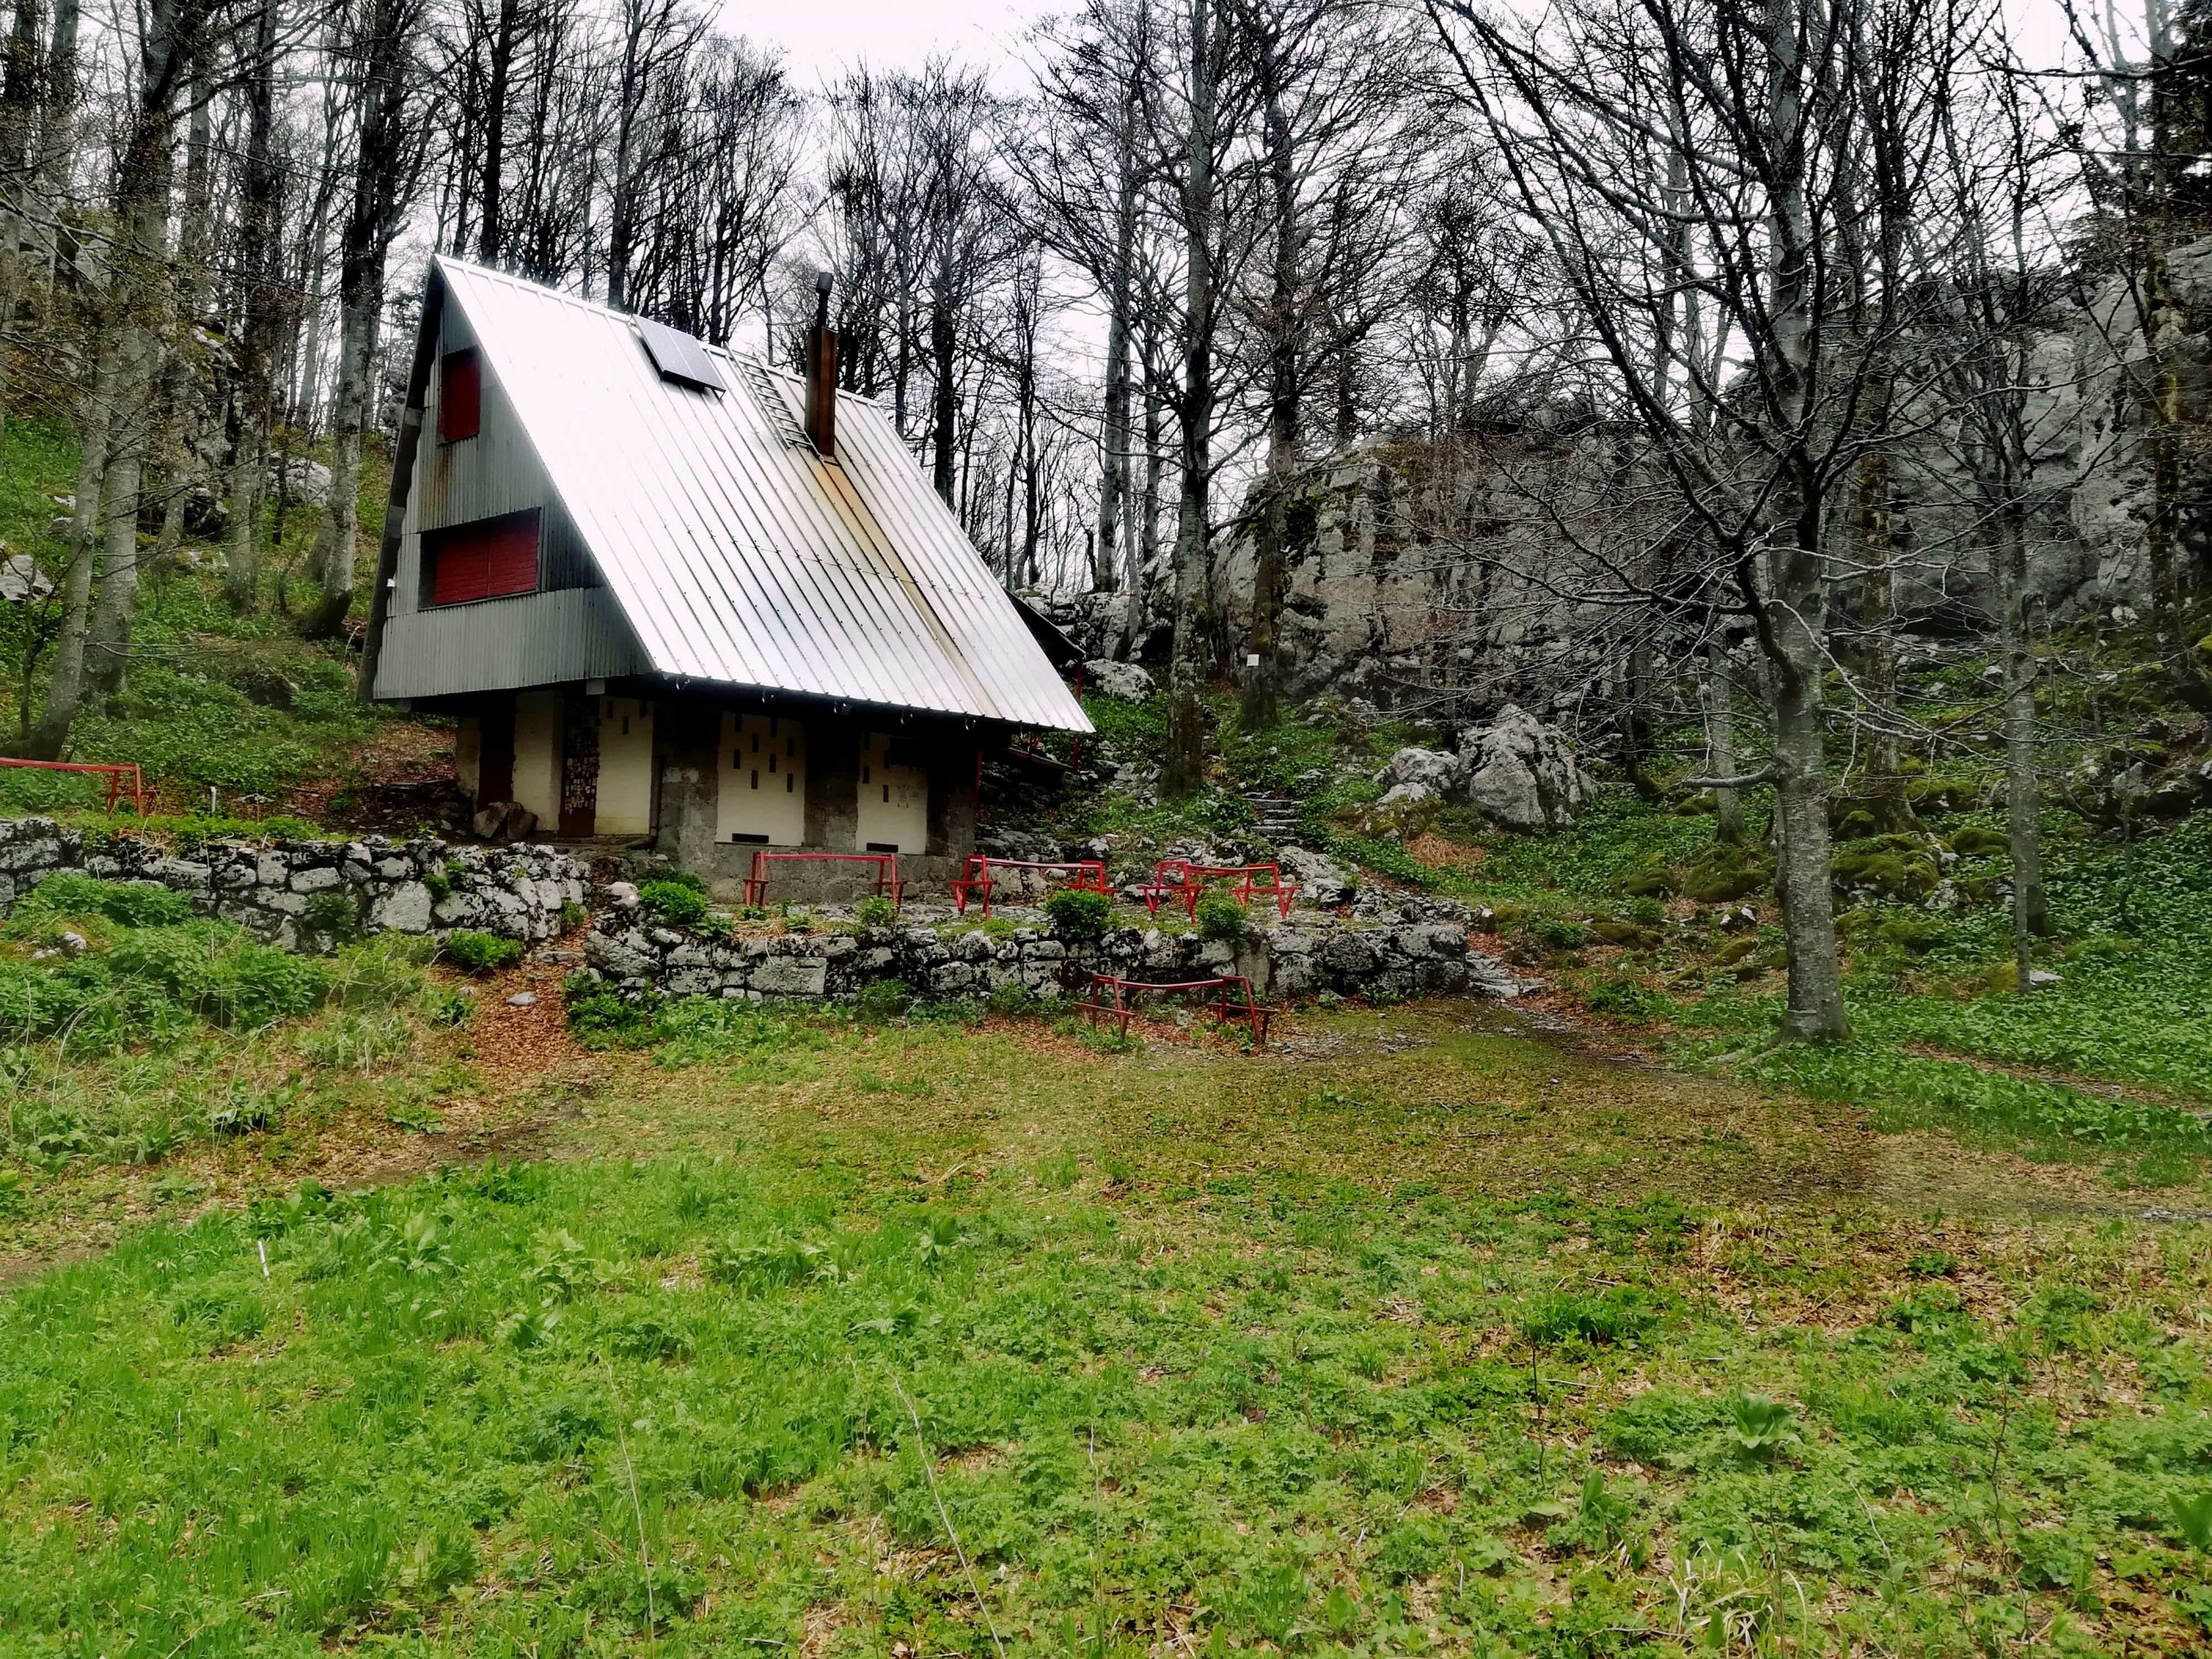 Mountain lodge at White rocks reservation near Ogulin, Croatia